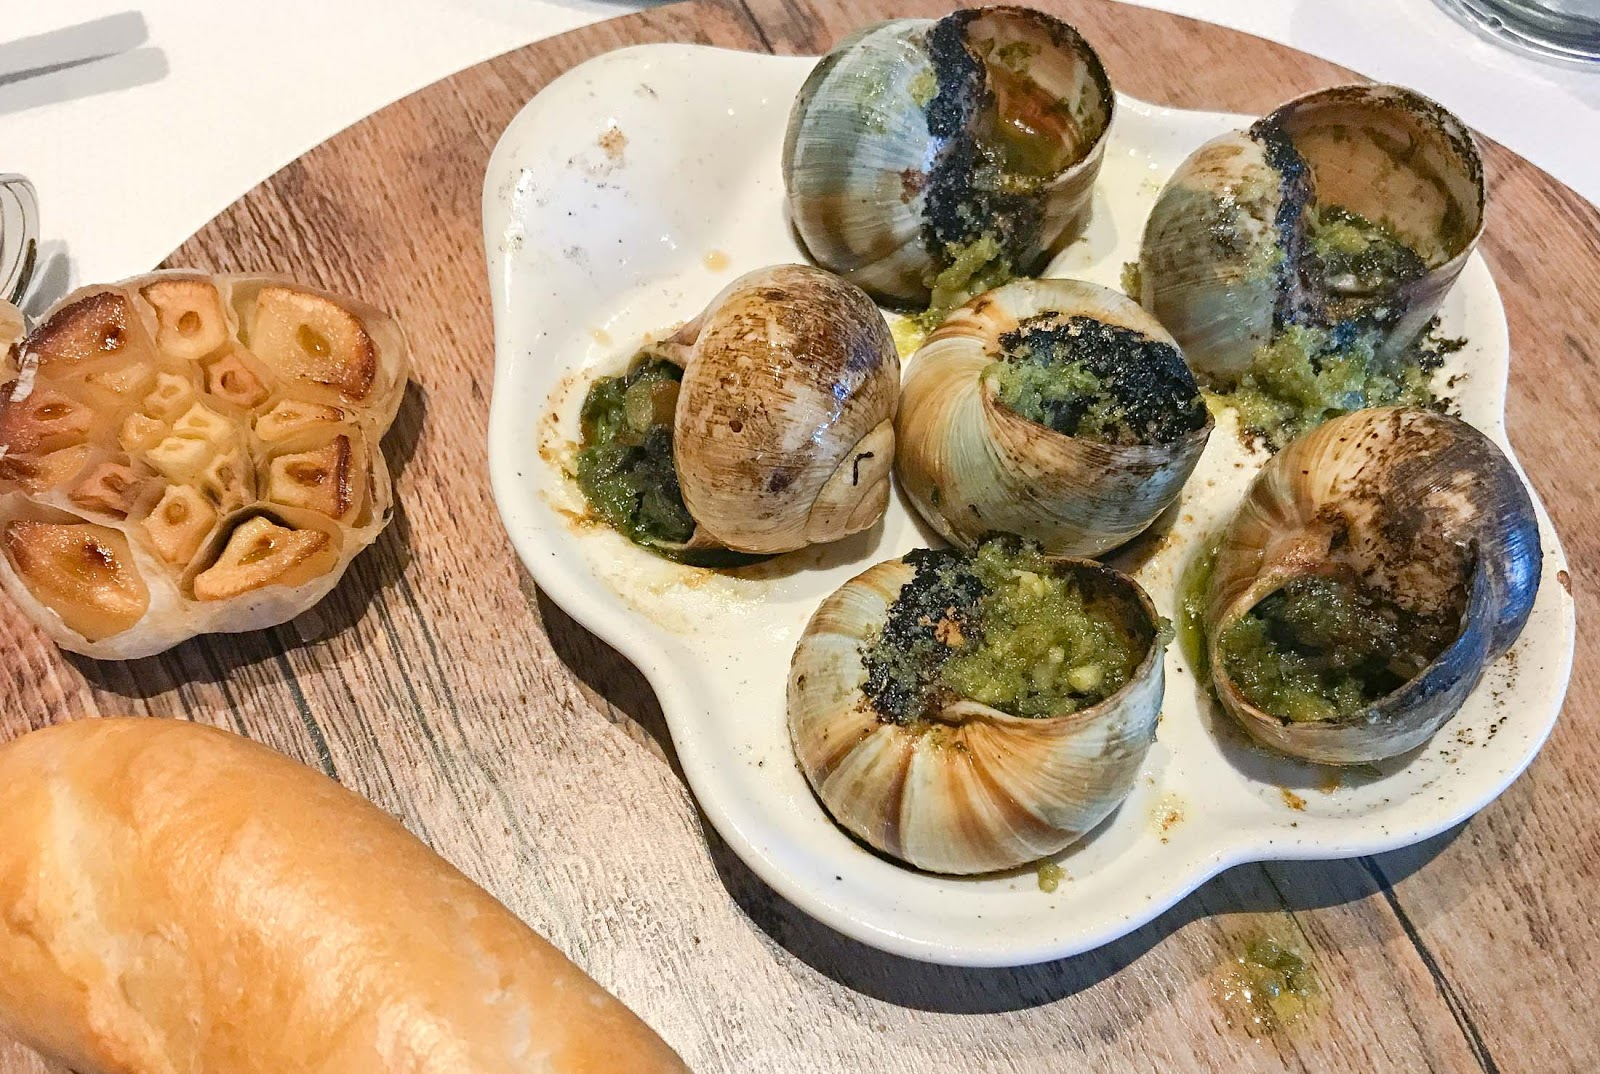 Escargot at Sur La Mer